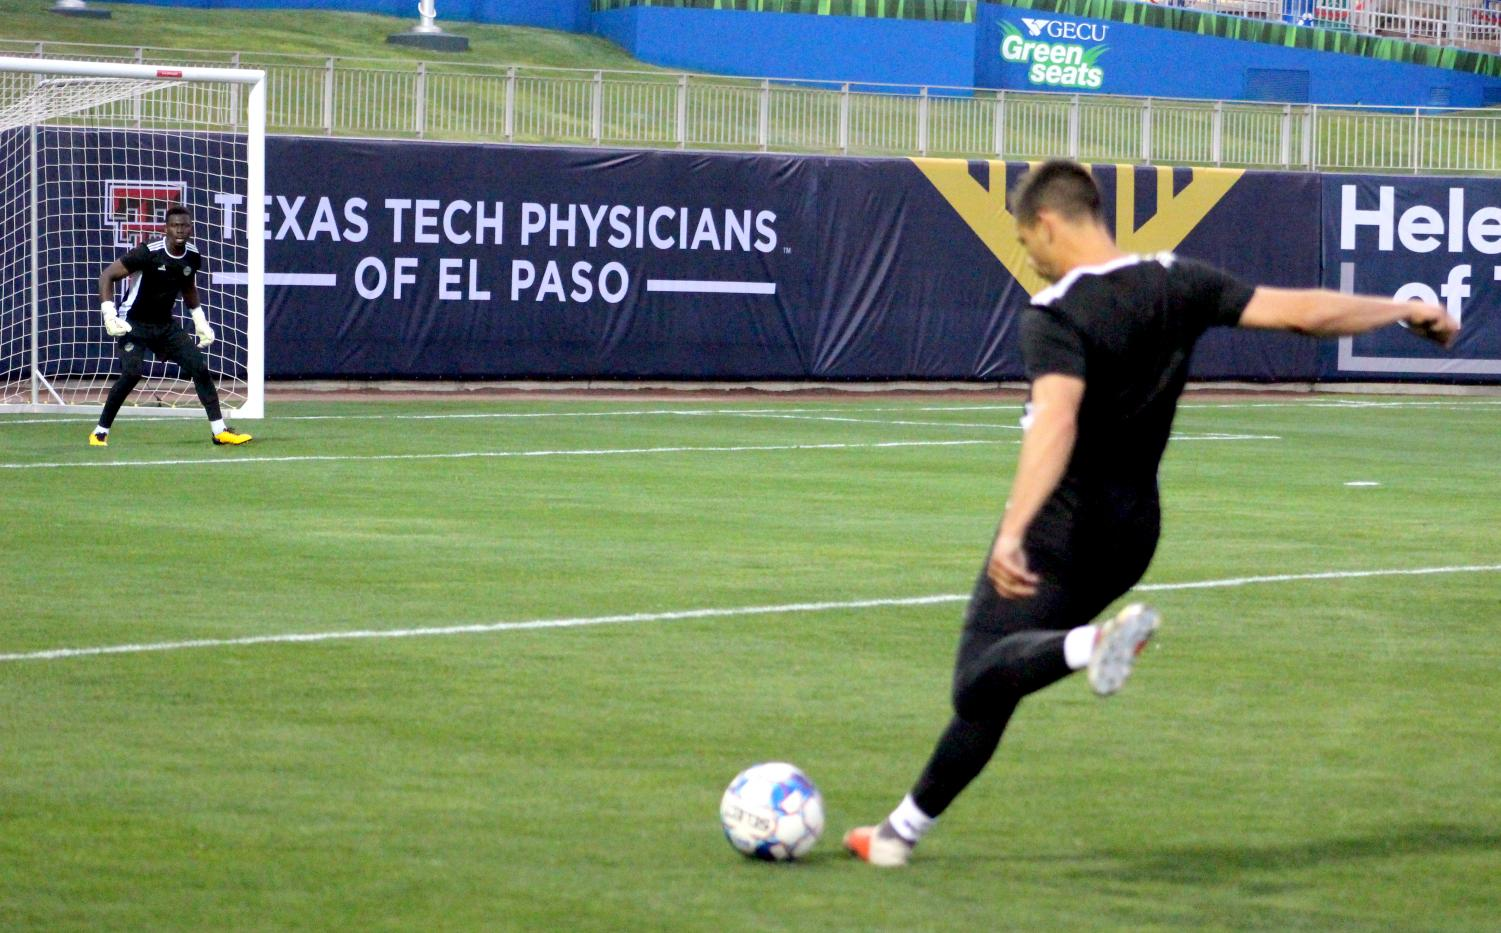 El Paso Locomotives team inaugural season inaugurates on Saturday March 7th at the Southwest University Park.